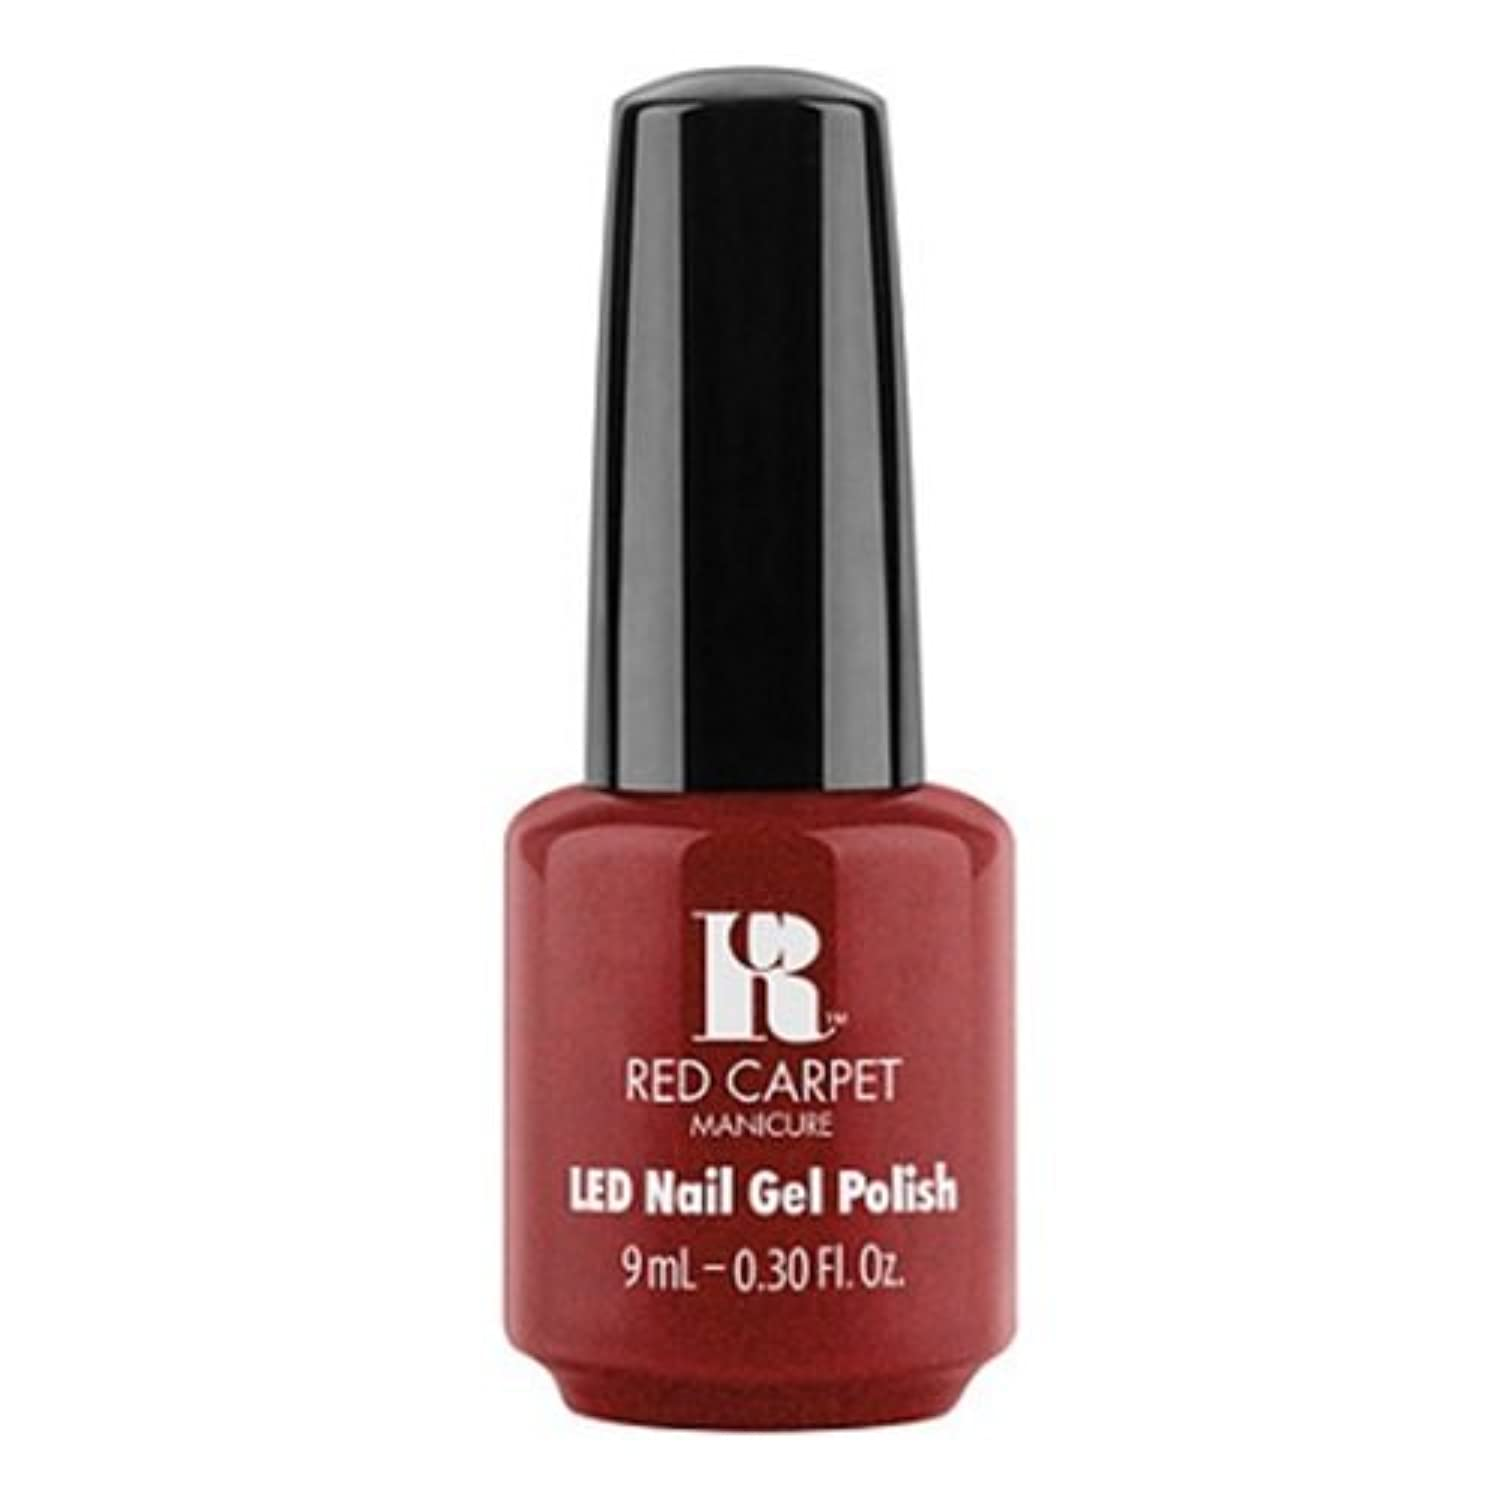 Red Carpet Manicure - LED Nail Gel Polish - Rapturous in Red - 0.3oz / 9ml